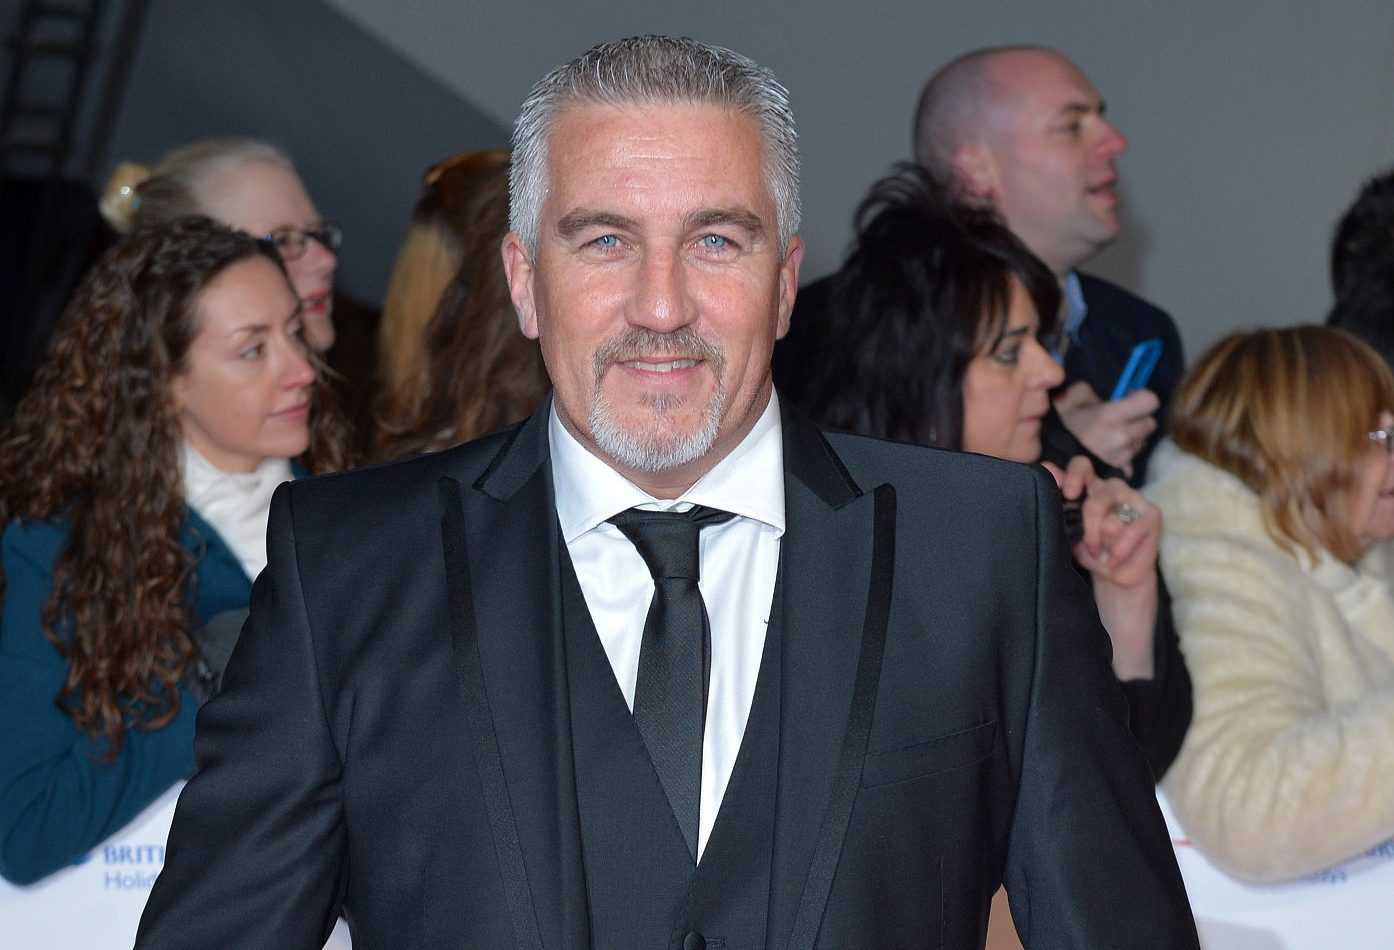 Who Is Paul Hollywood Dating In 2021?